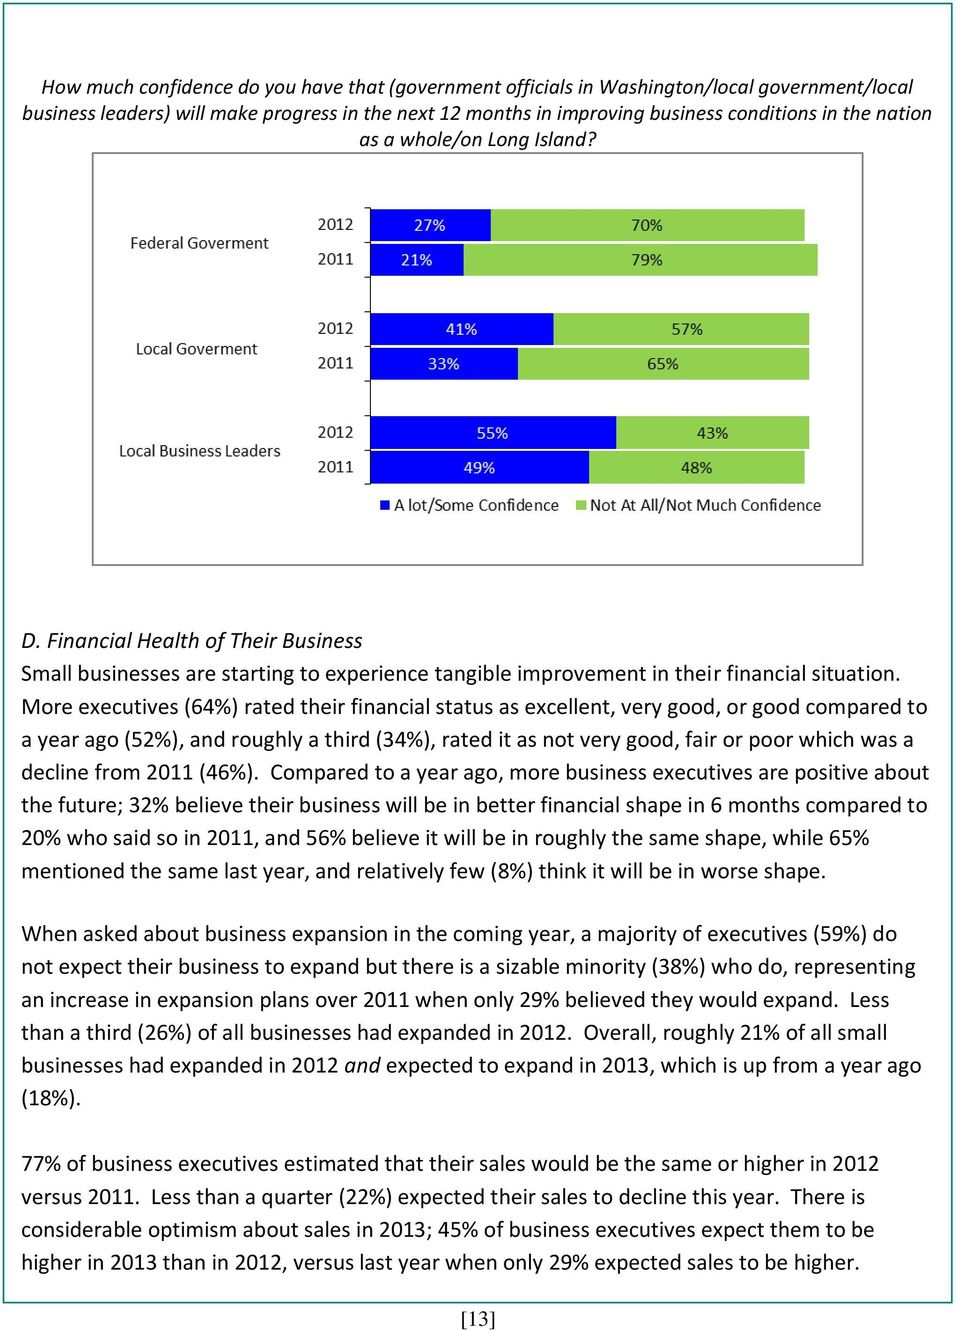 More executives (64%) rated their financial status as excellent, very good, or good compared to a year ago (52%), and roughly a third (34%), rated it as not very good, fair or poor which was a